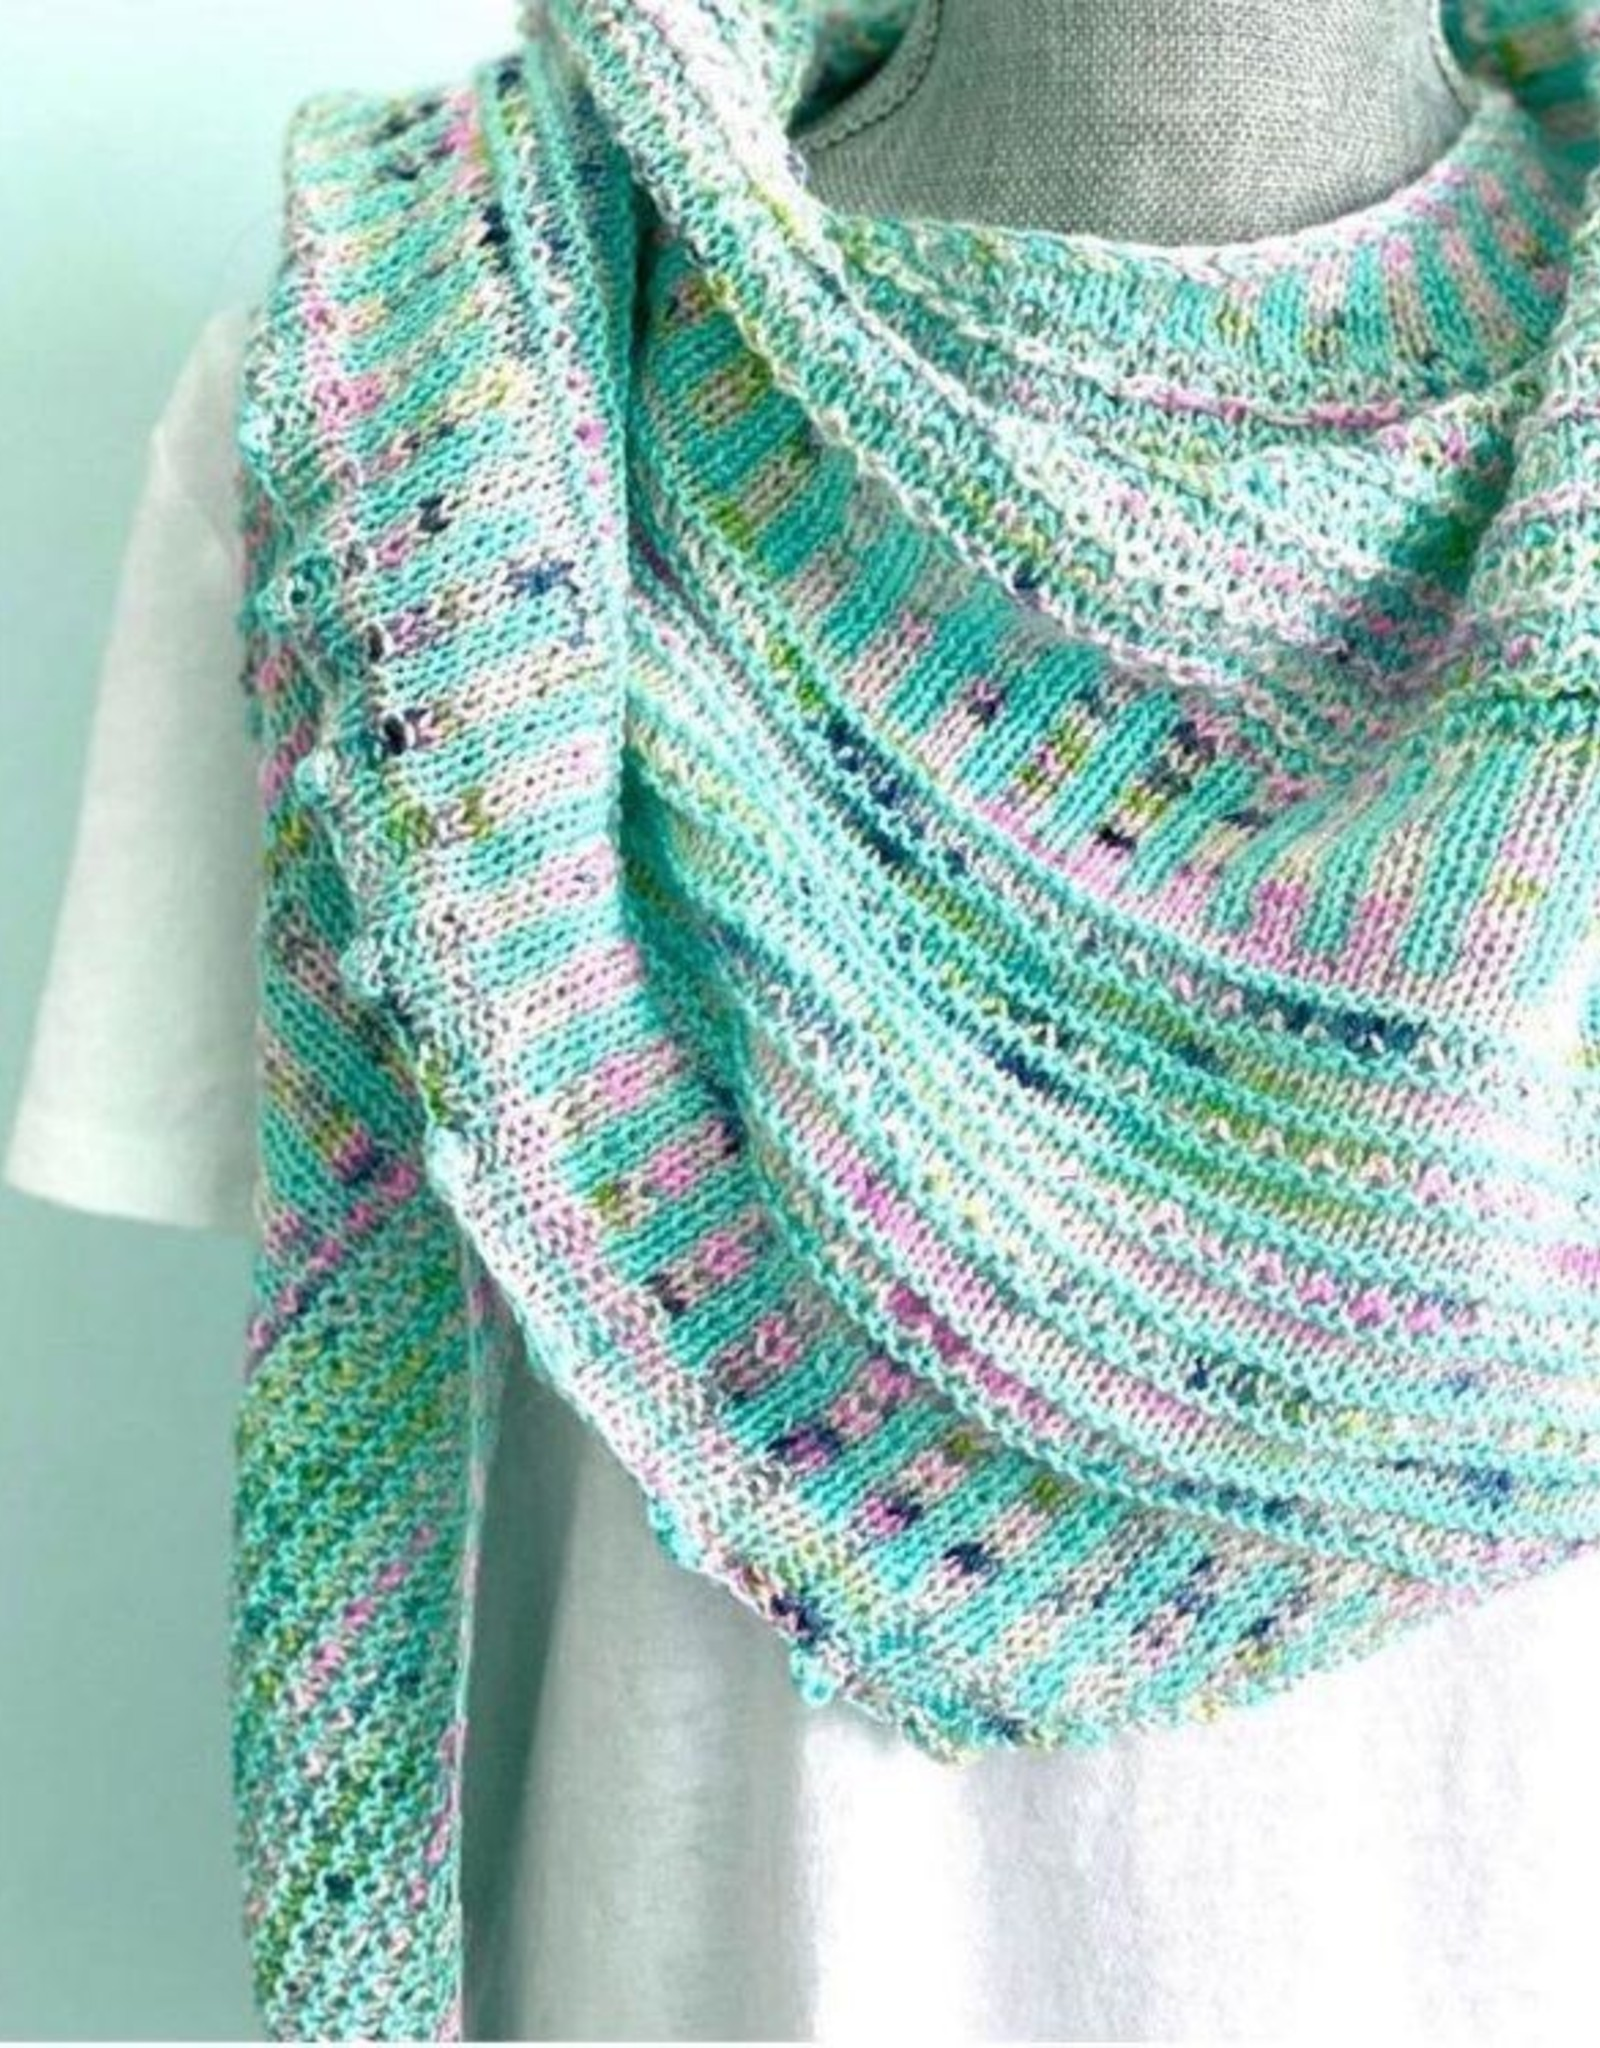 Yarn it & Haberdashery Mother's Day Bouquet - 2-skein set, 'Breathe and Hope' Shawl